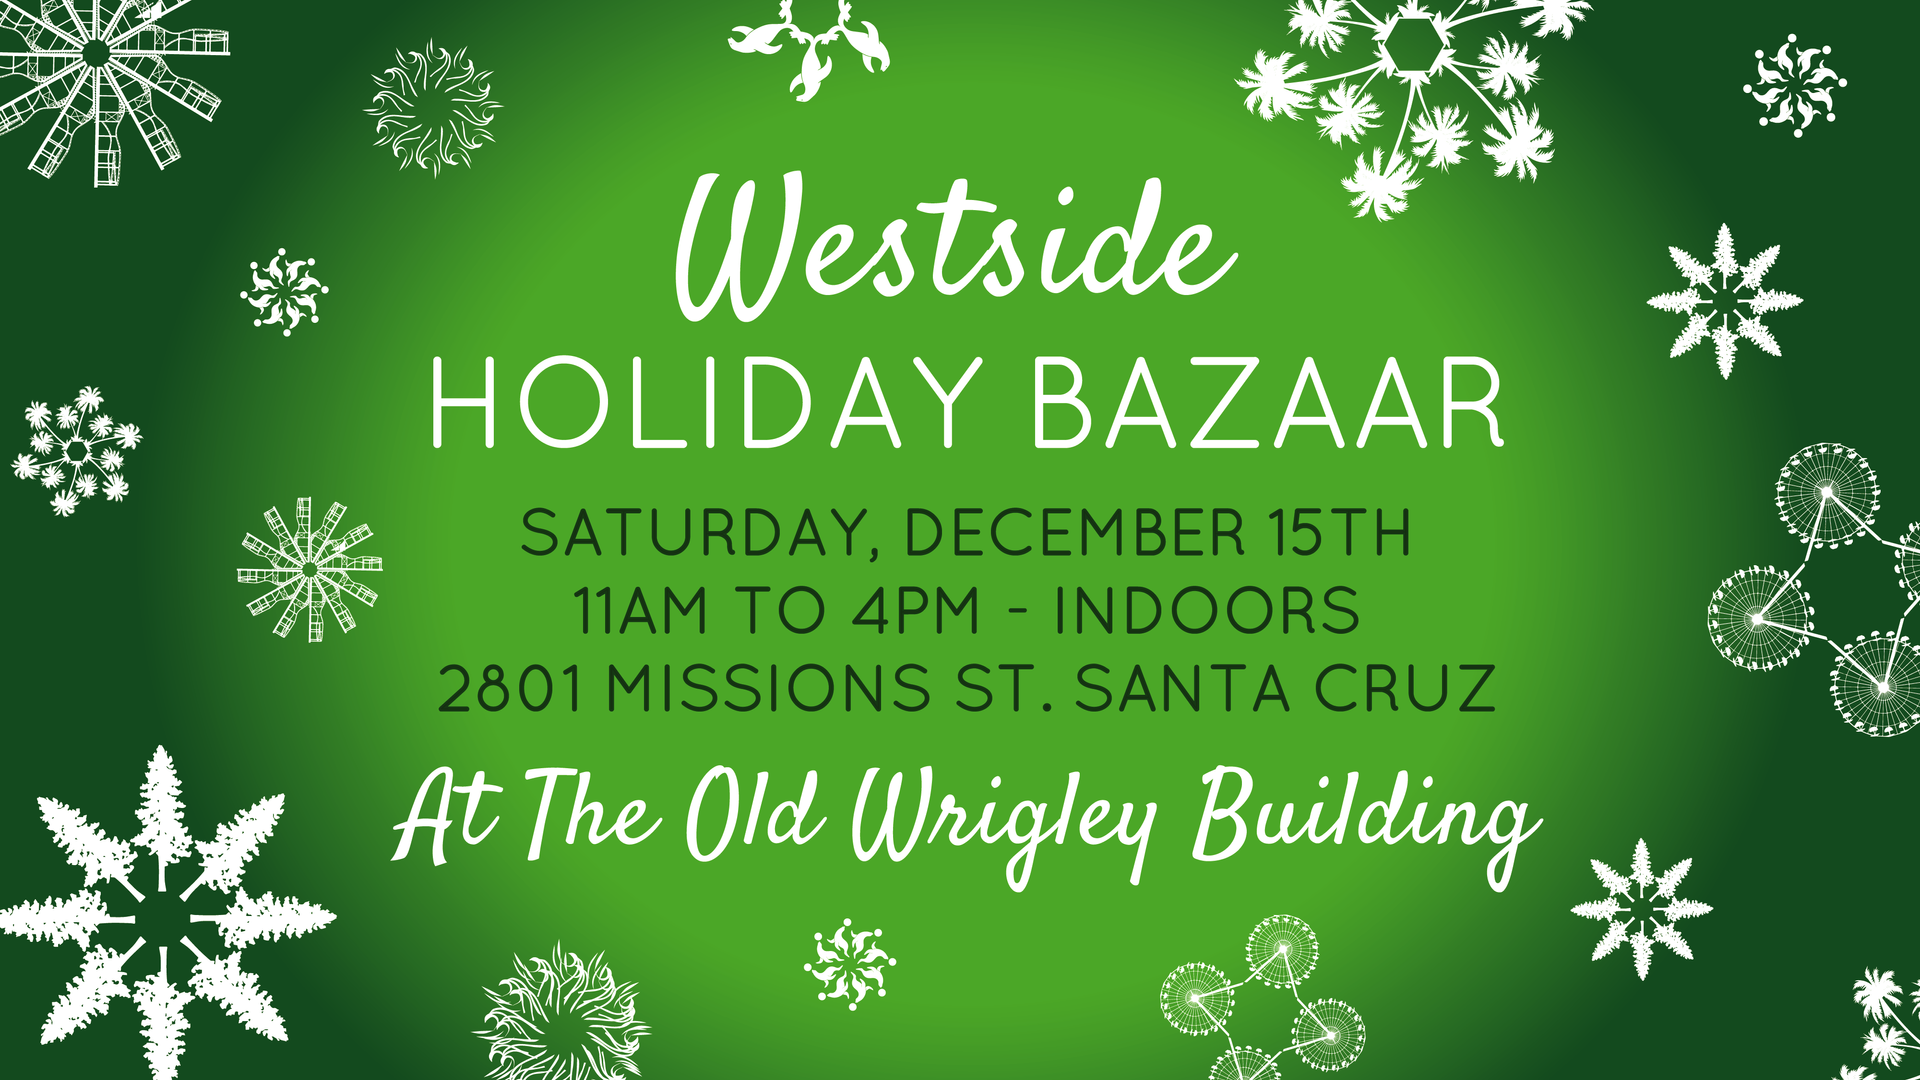 Westside Holiday Bazaar Facebook banner